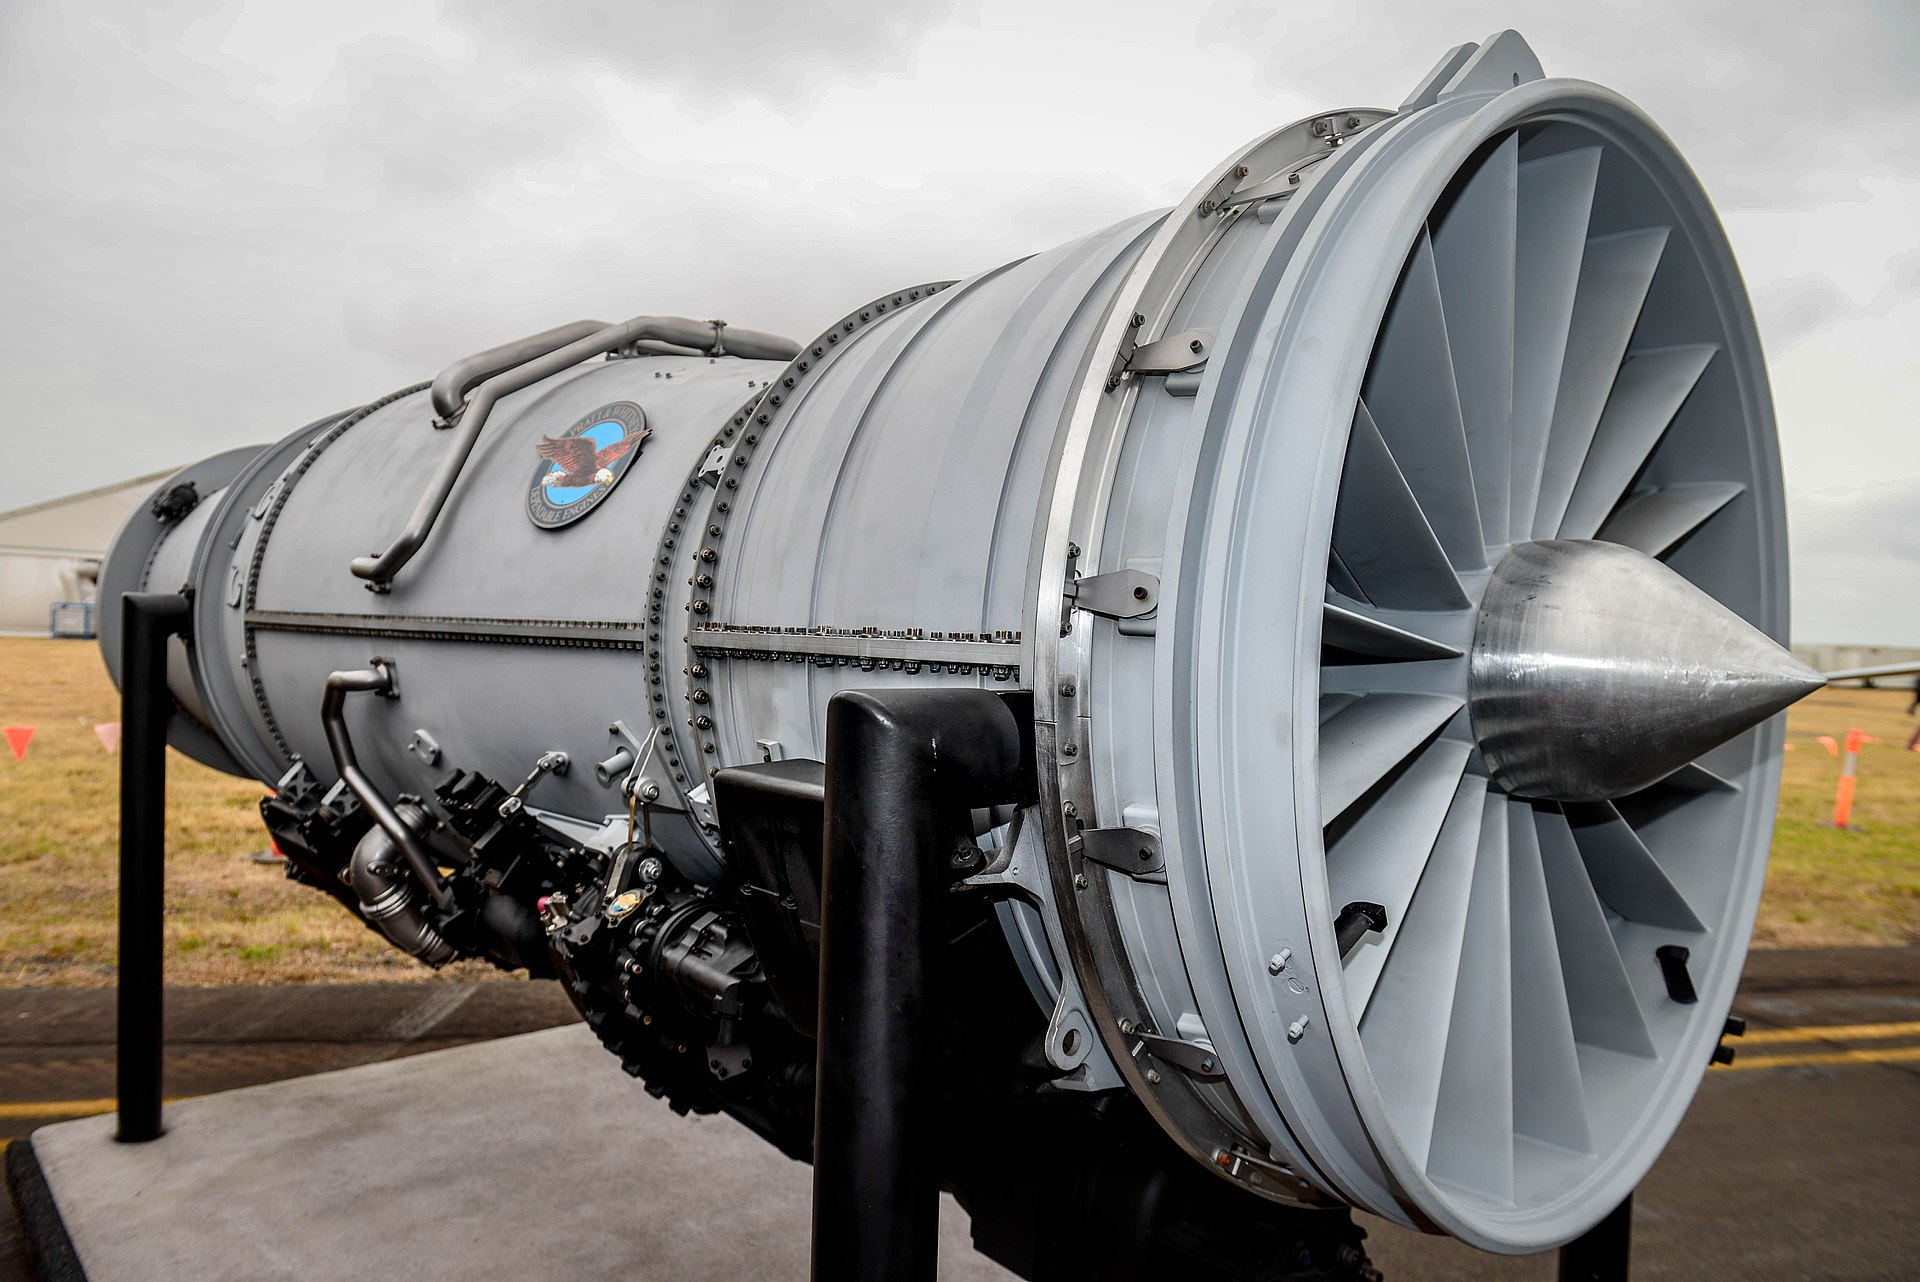 how to start a fighter jet engine